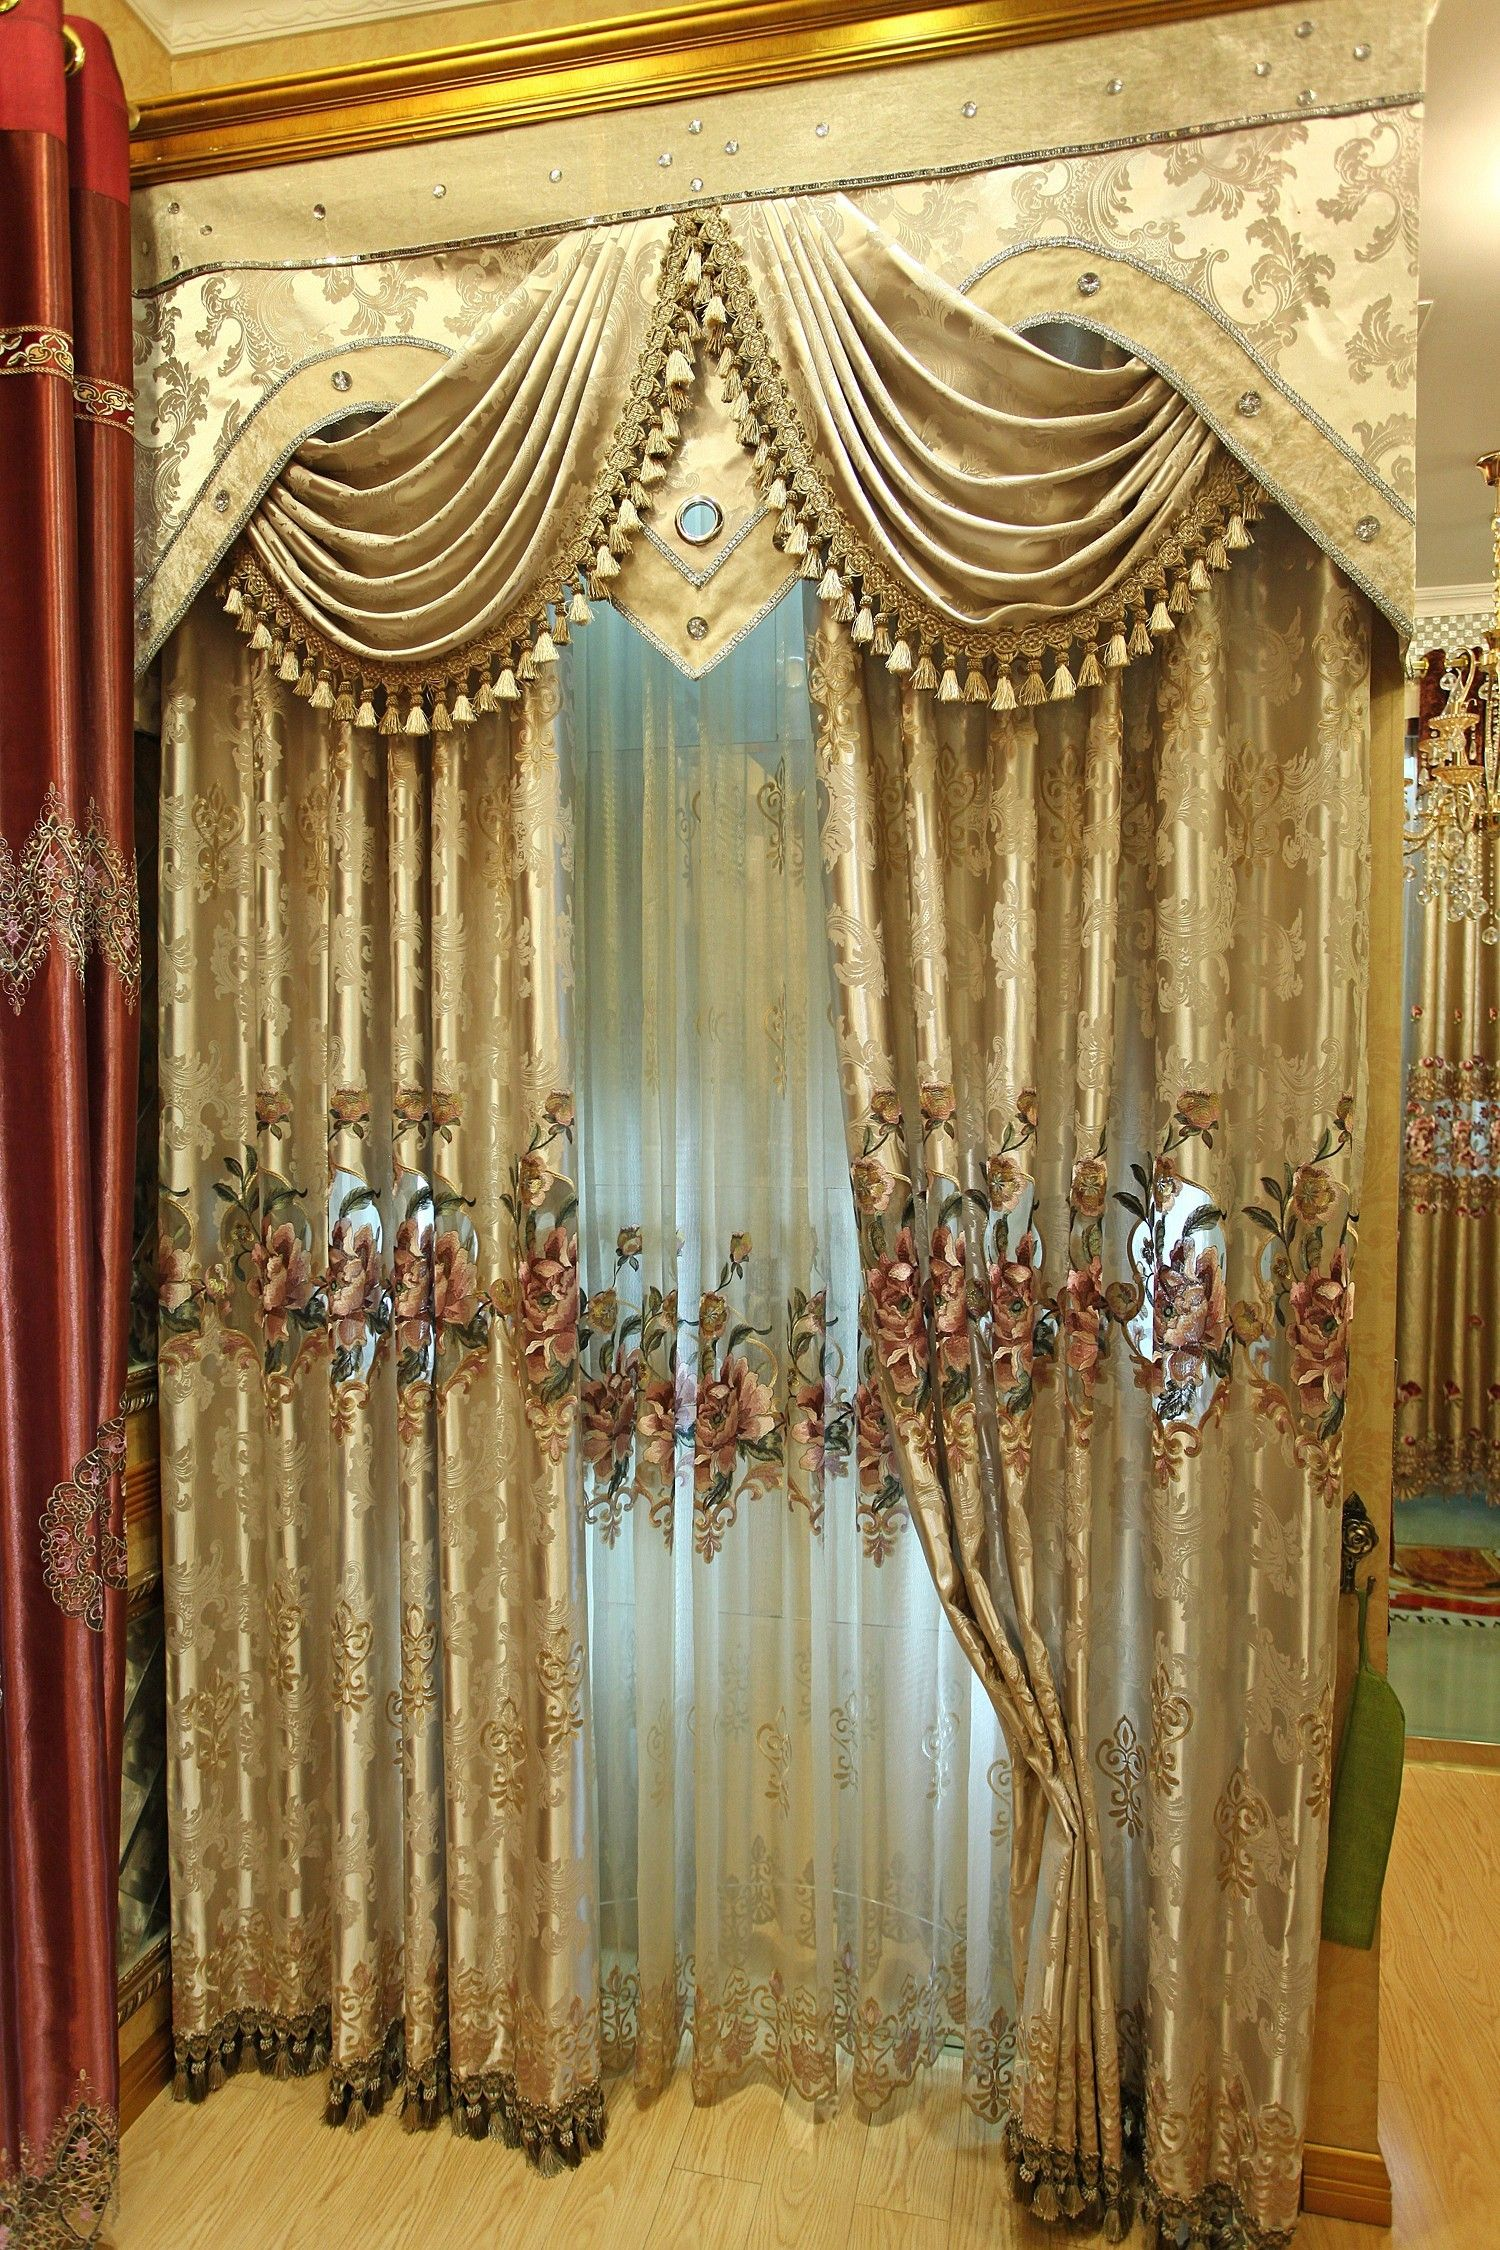 Upscale Drapes  Luxury Highgrade Embroidery Curtains The Living Awesome Luxury Curtains For Living Room 2018